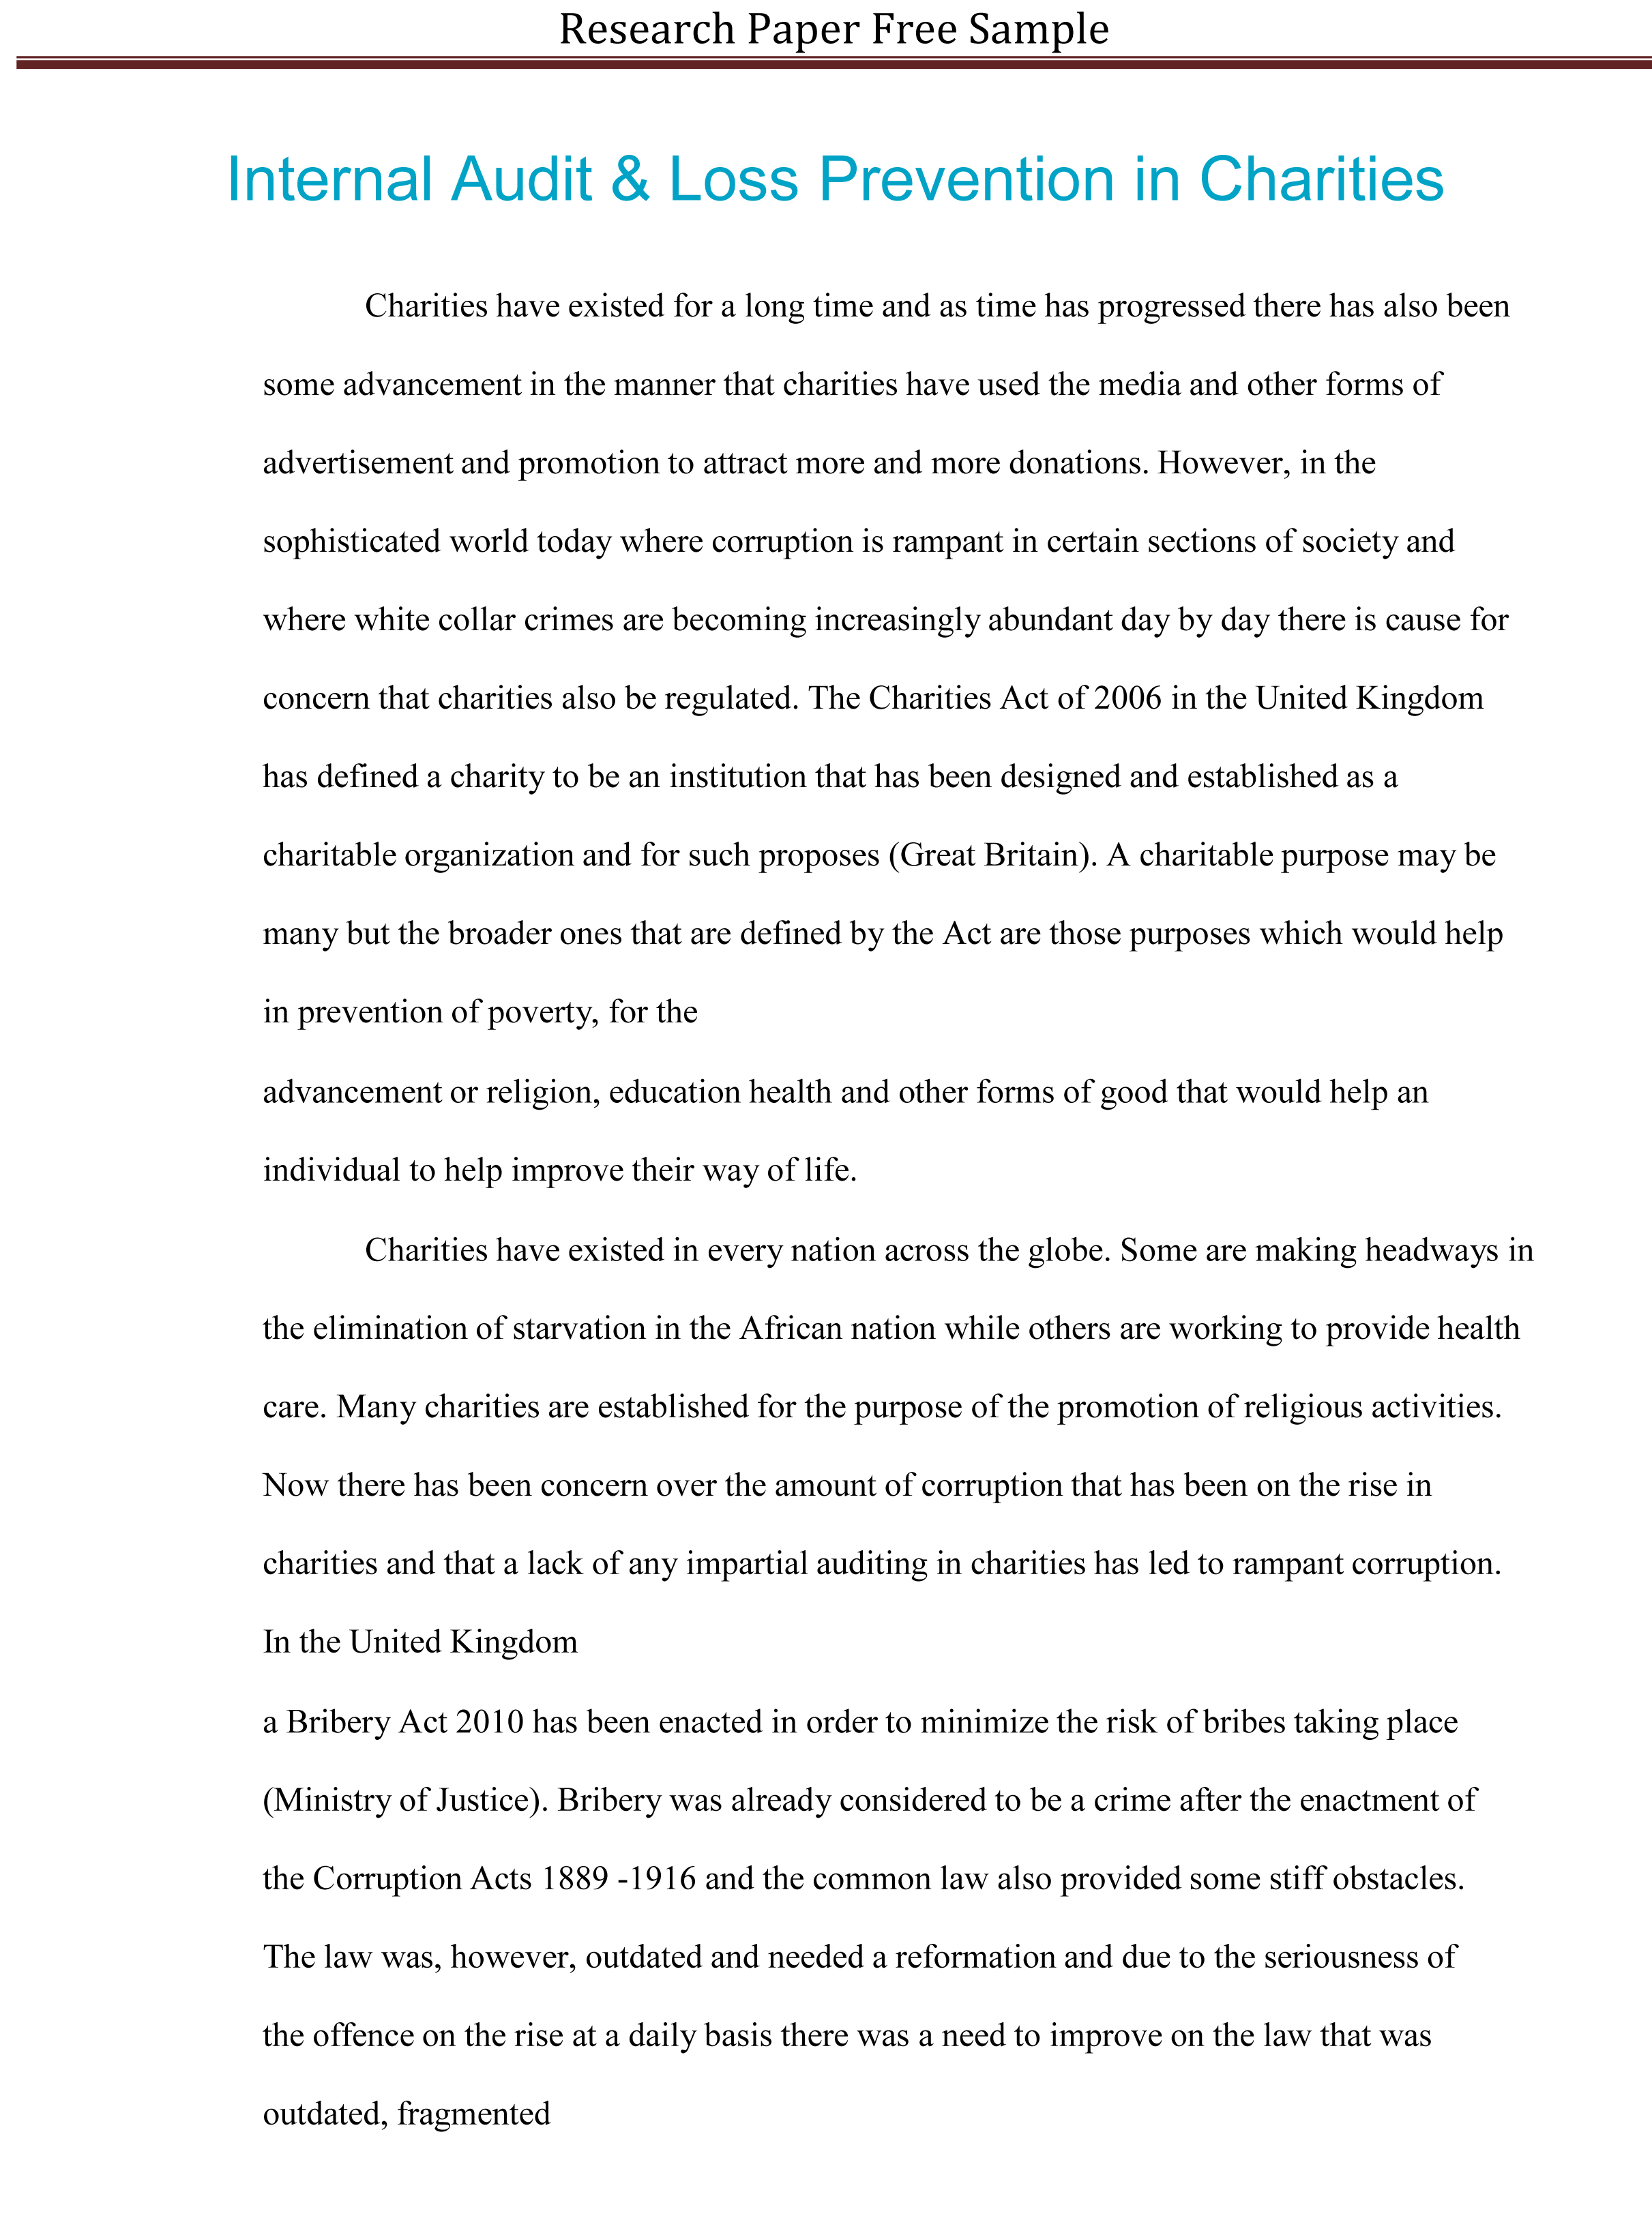 014 Example Of Introduction In Research Paper Help Writing Paragraph Unique Imrad Format About Smoking Cyberbullying Full